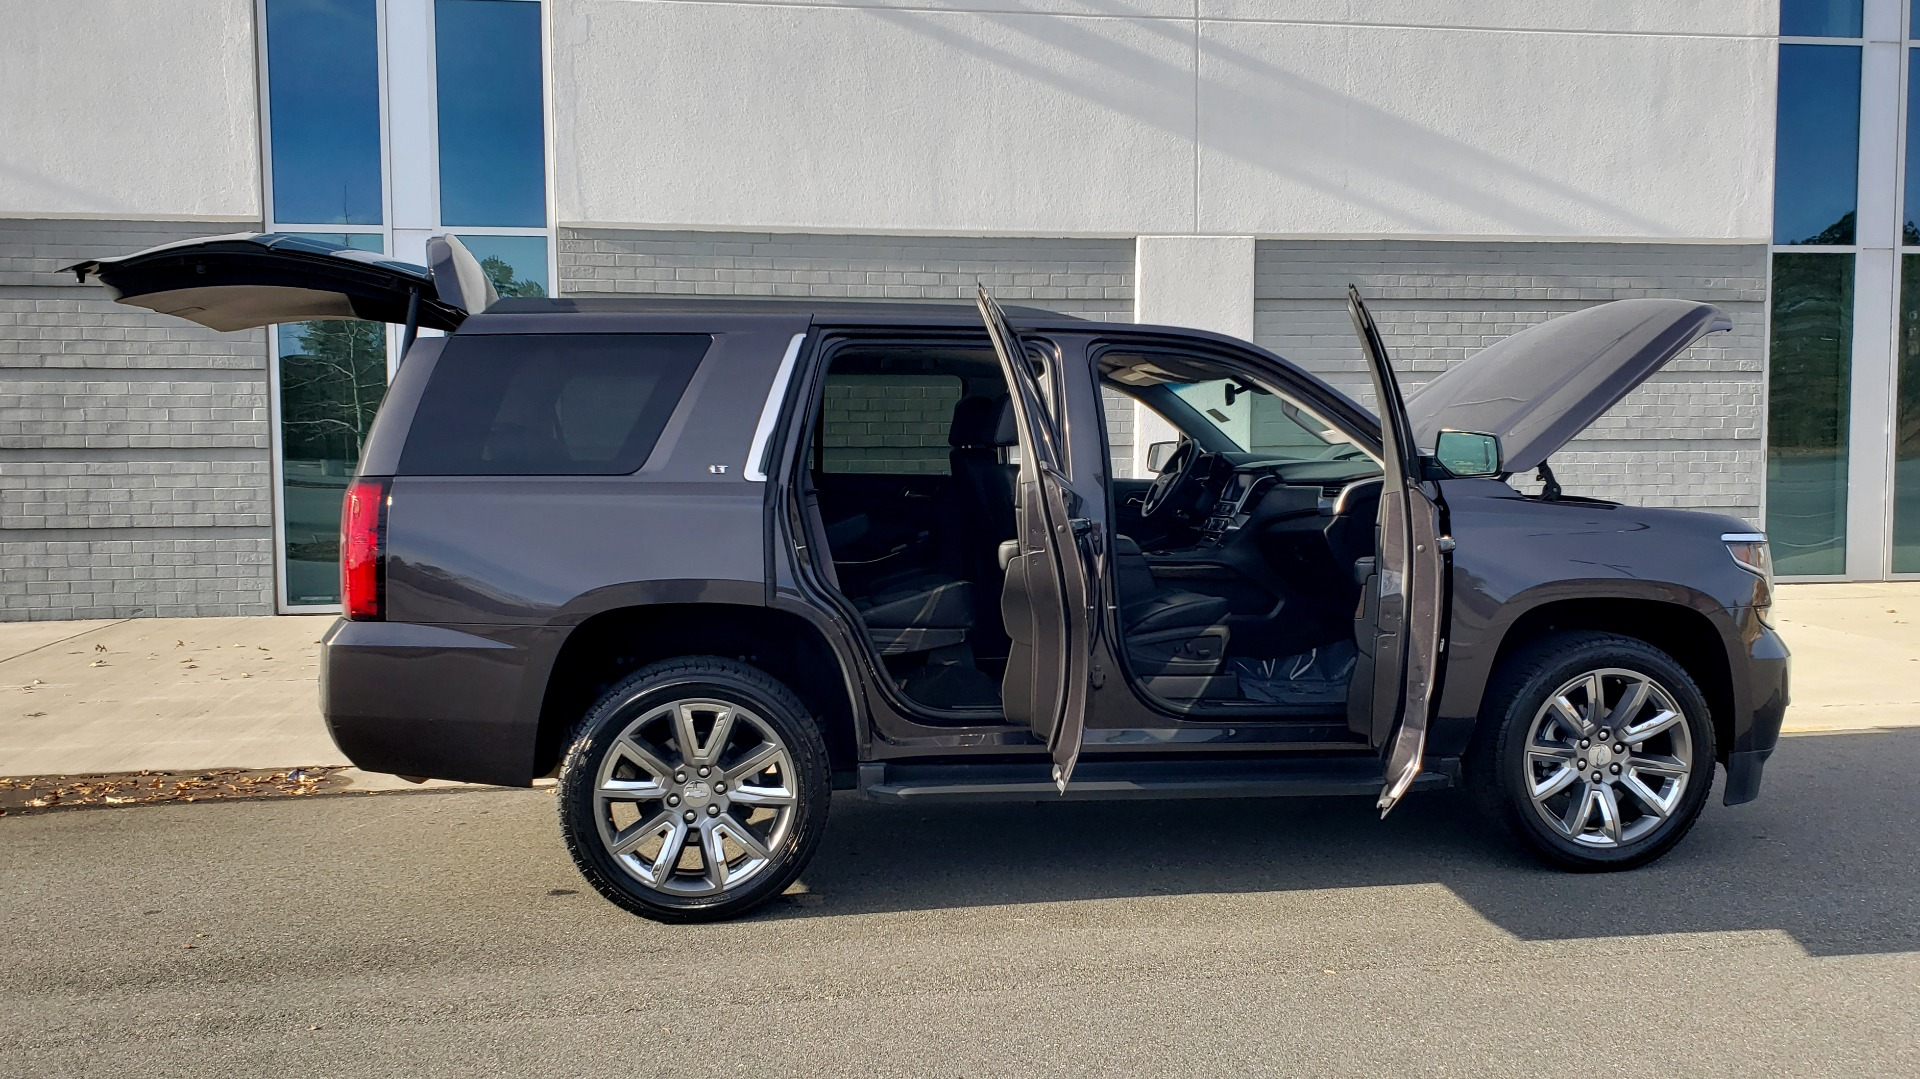 Used 2017 Chevrolet TAHOE 4WD LT / LUXURY PKG / NAV / BOSE / 3-ROW / REARVIEW for sale Sold at Formula Imports in Charlotte NC 28227 12